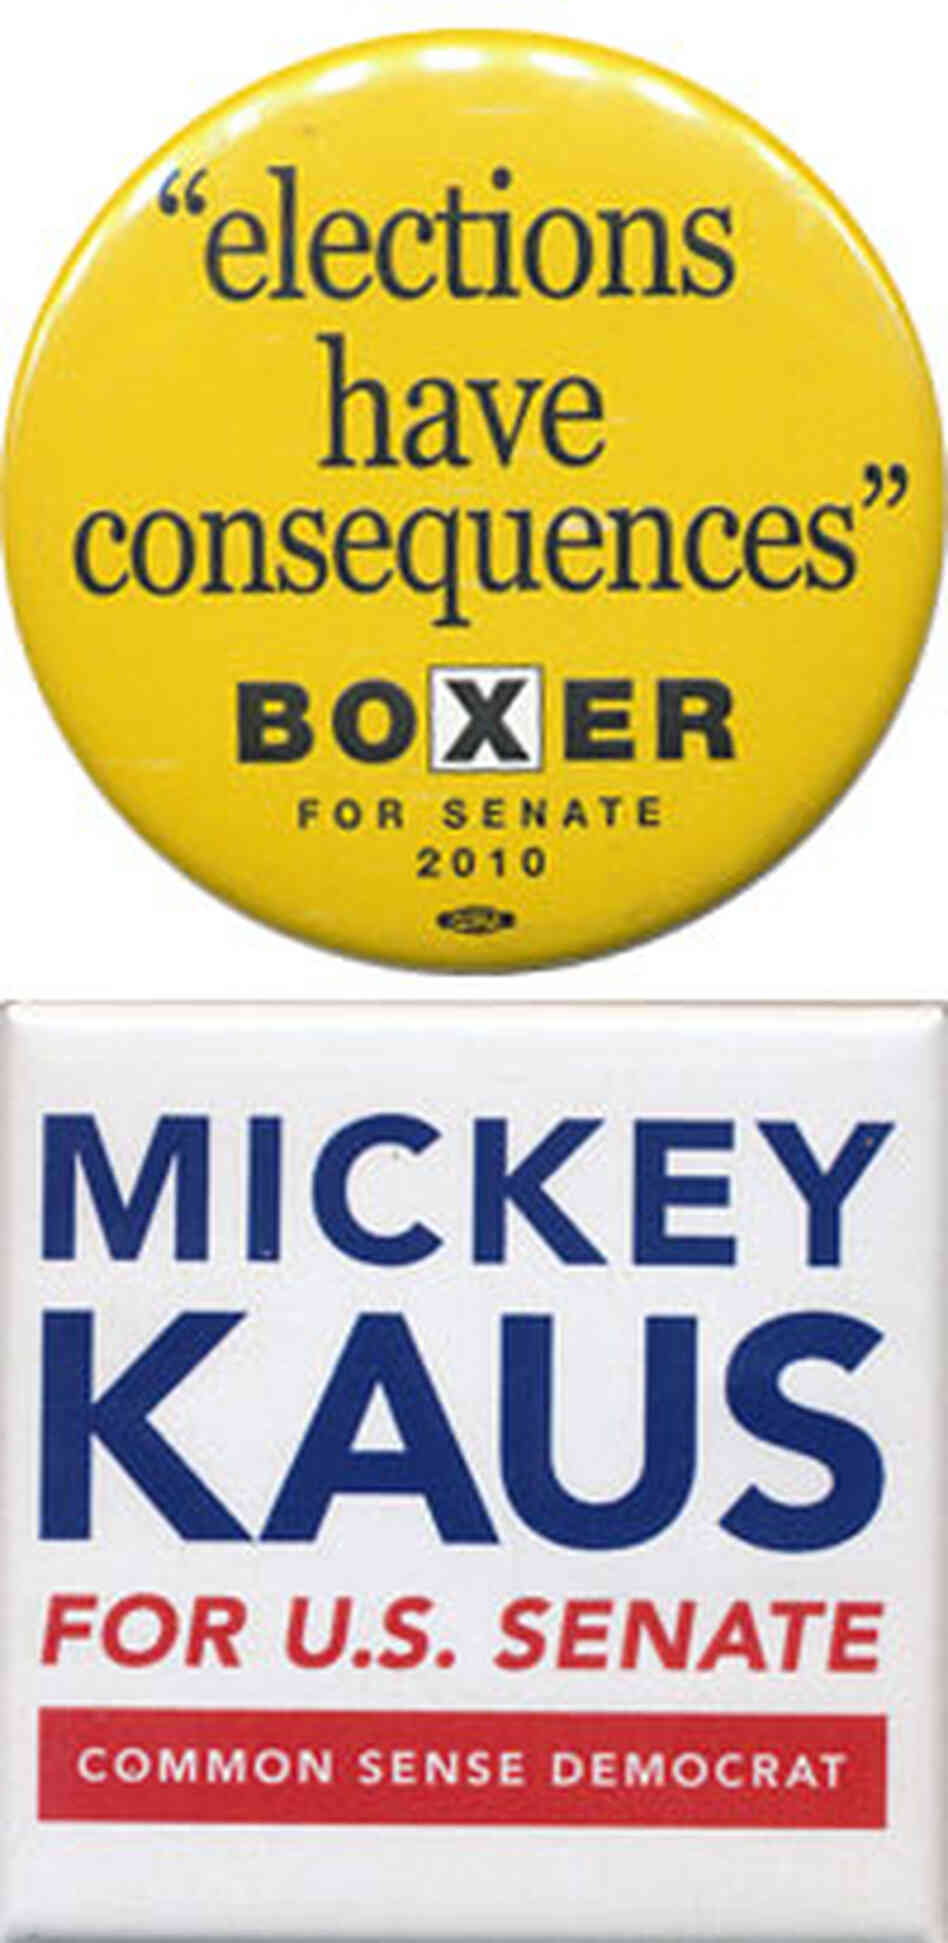 Boxer and Kaus buttons